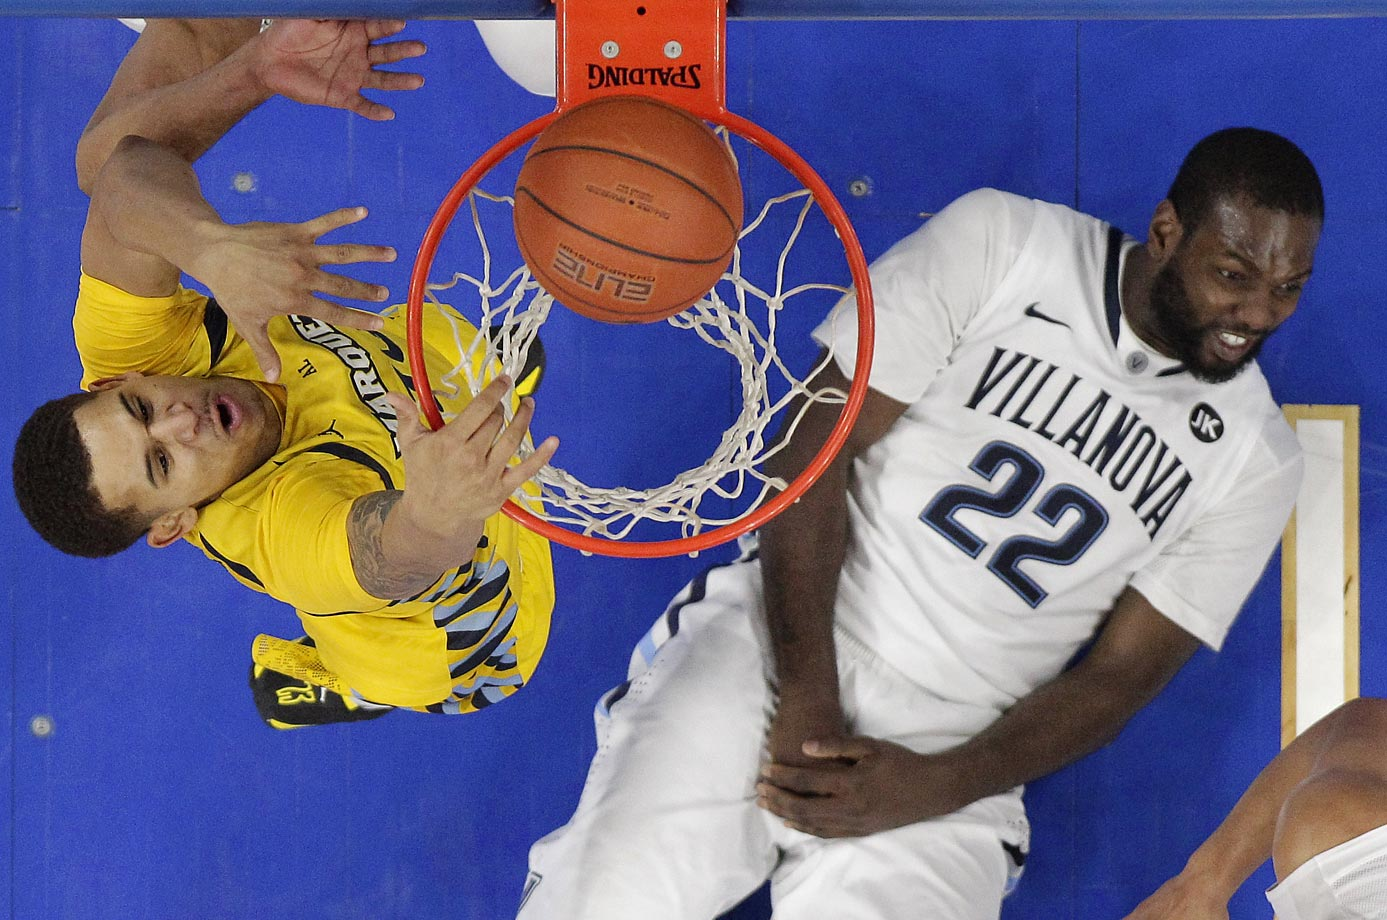 Villanova's Jay Vaughn Pinkston has an embarrassing vantage point on this dunk by Marquette's Juan Anderson.